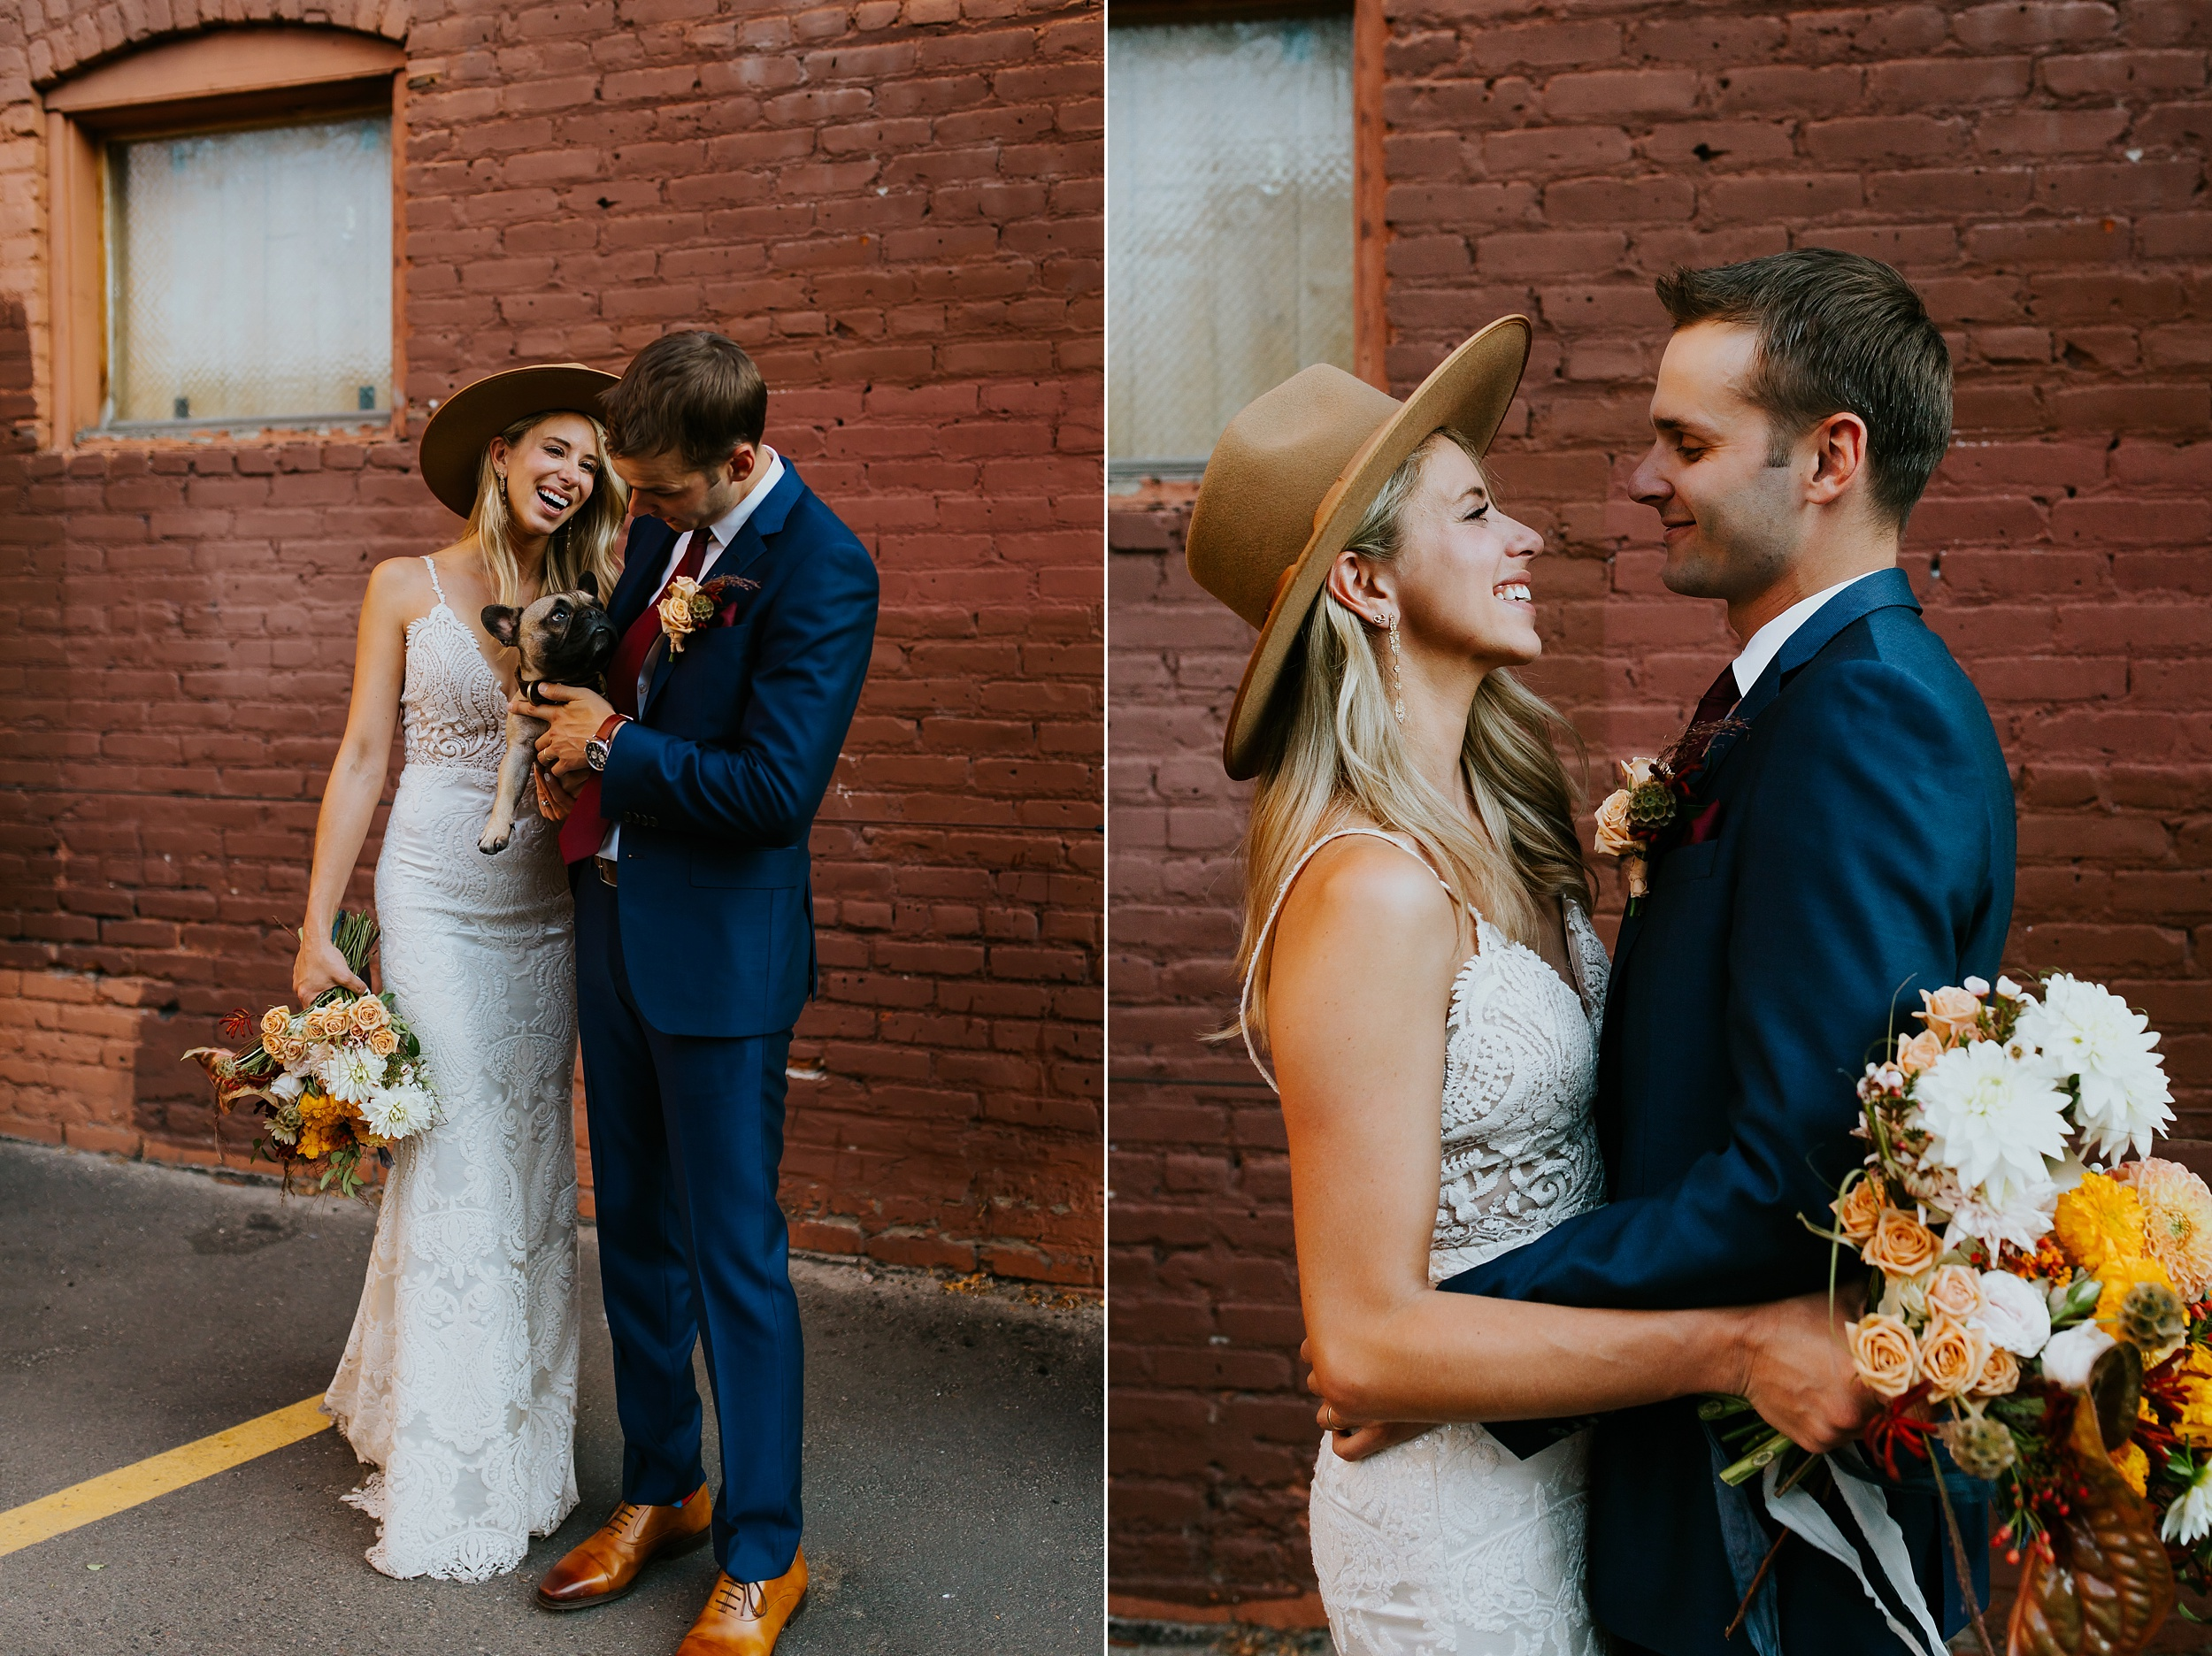 DowntownDenver_Colorado_Elopement_Anniversary_Session_Urban_Edit-23.jpg